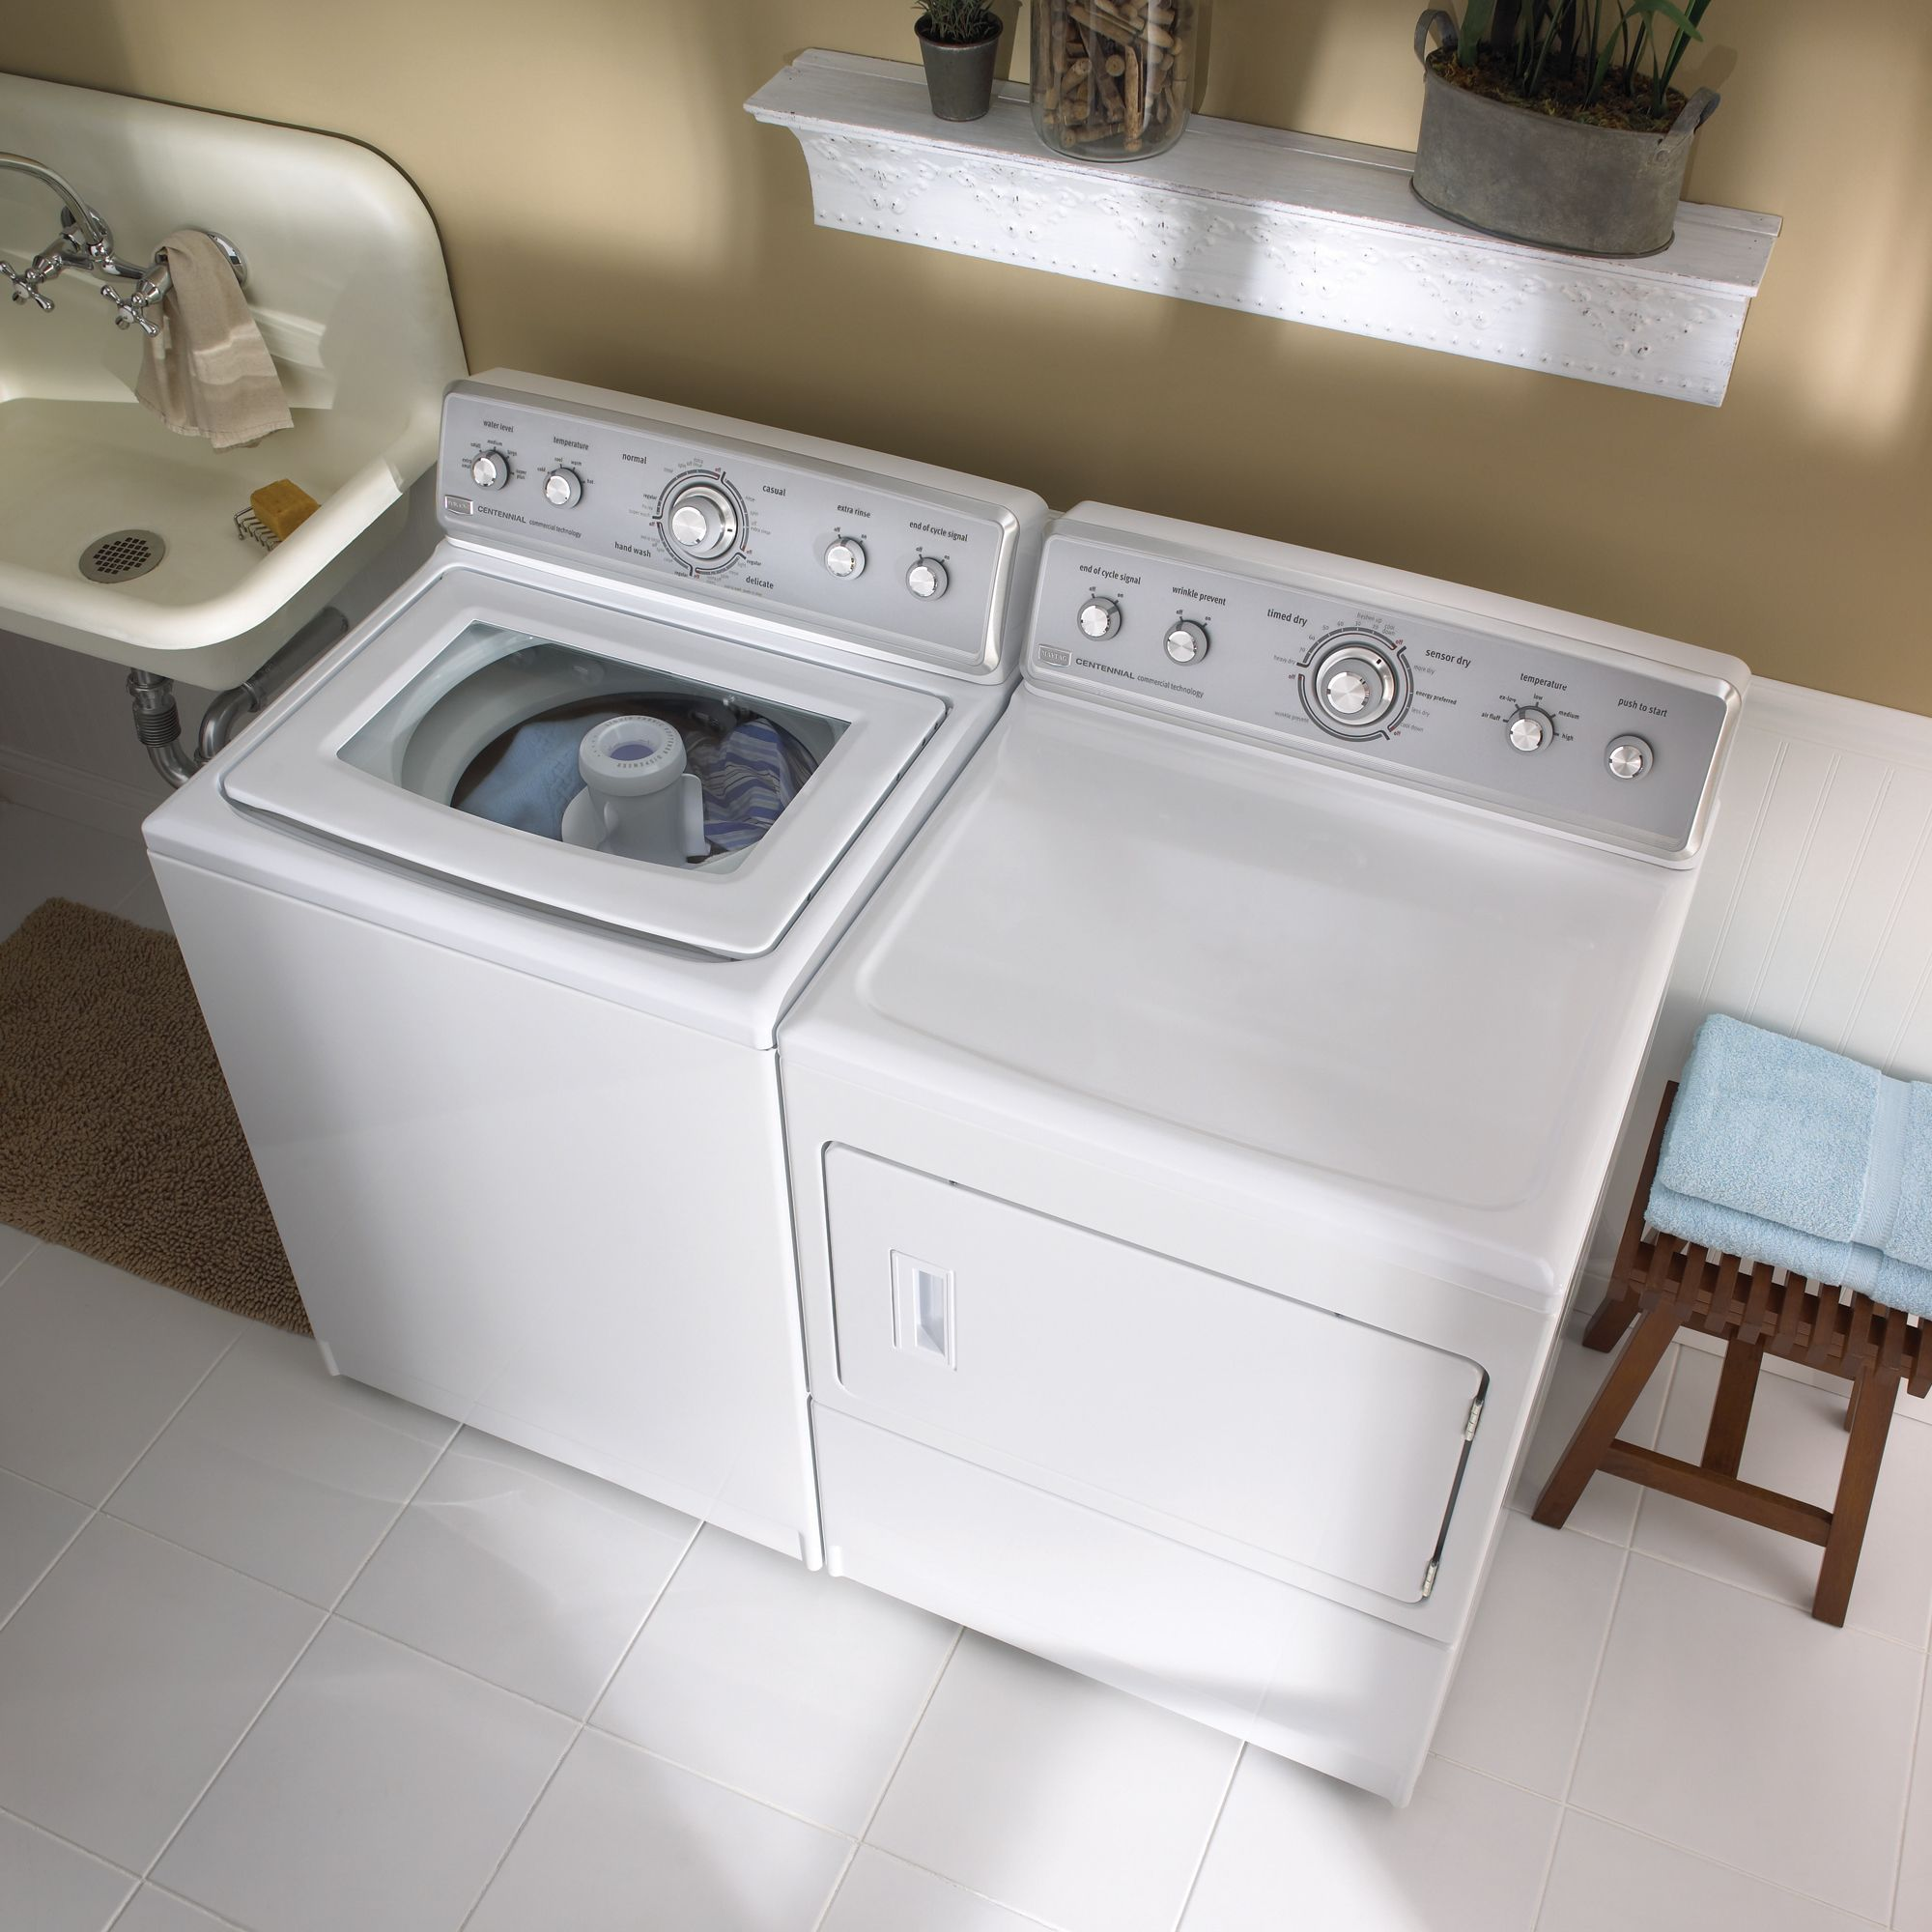 Maytag Centennial® 3.5 cu. ft. Capacity Washer